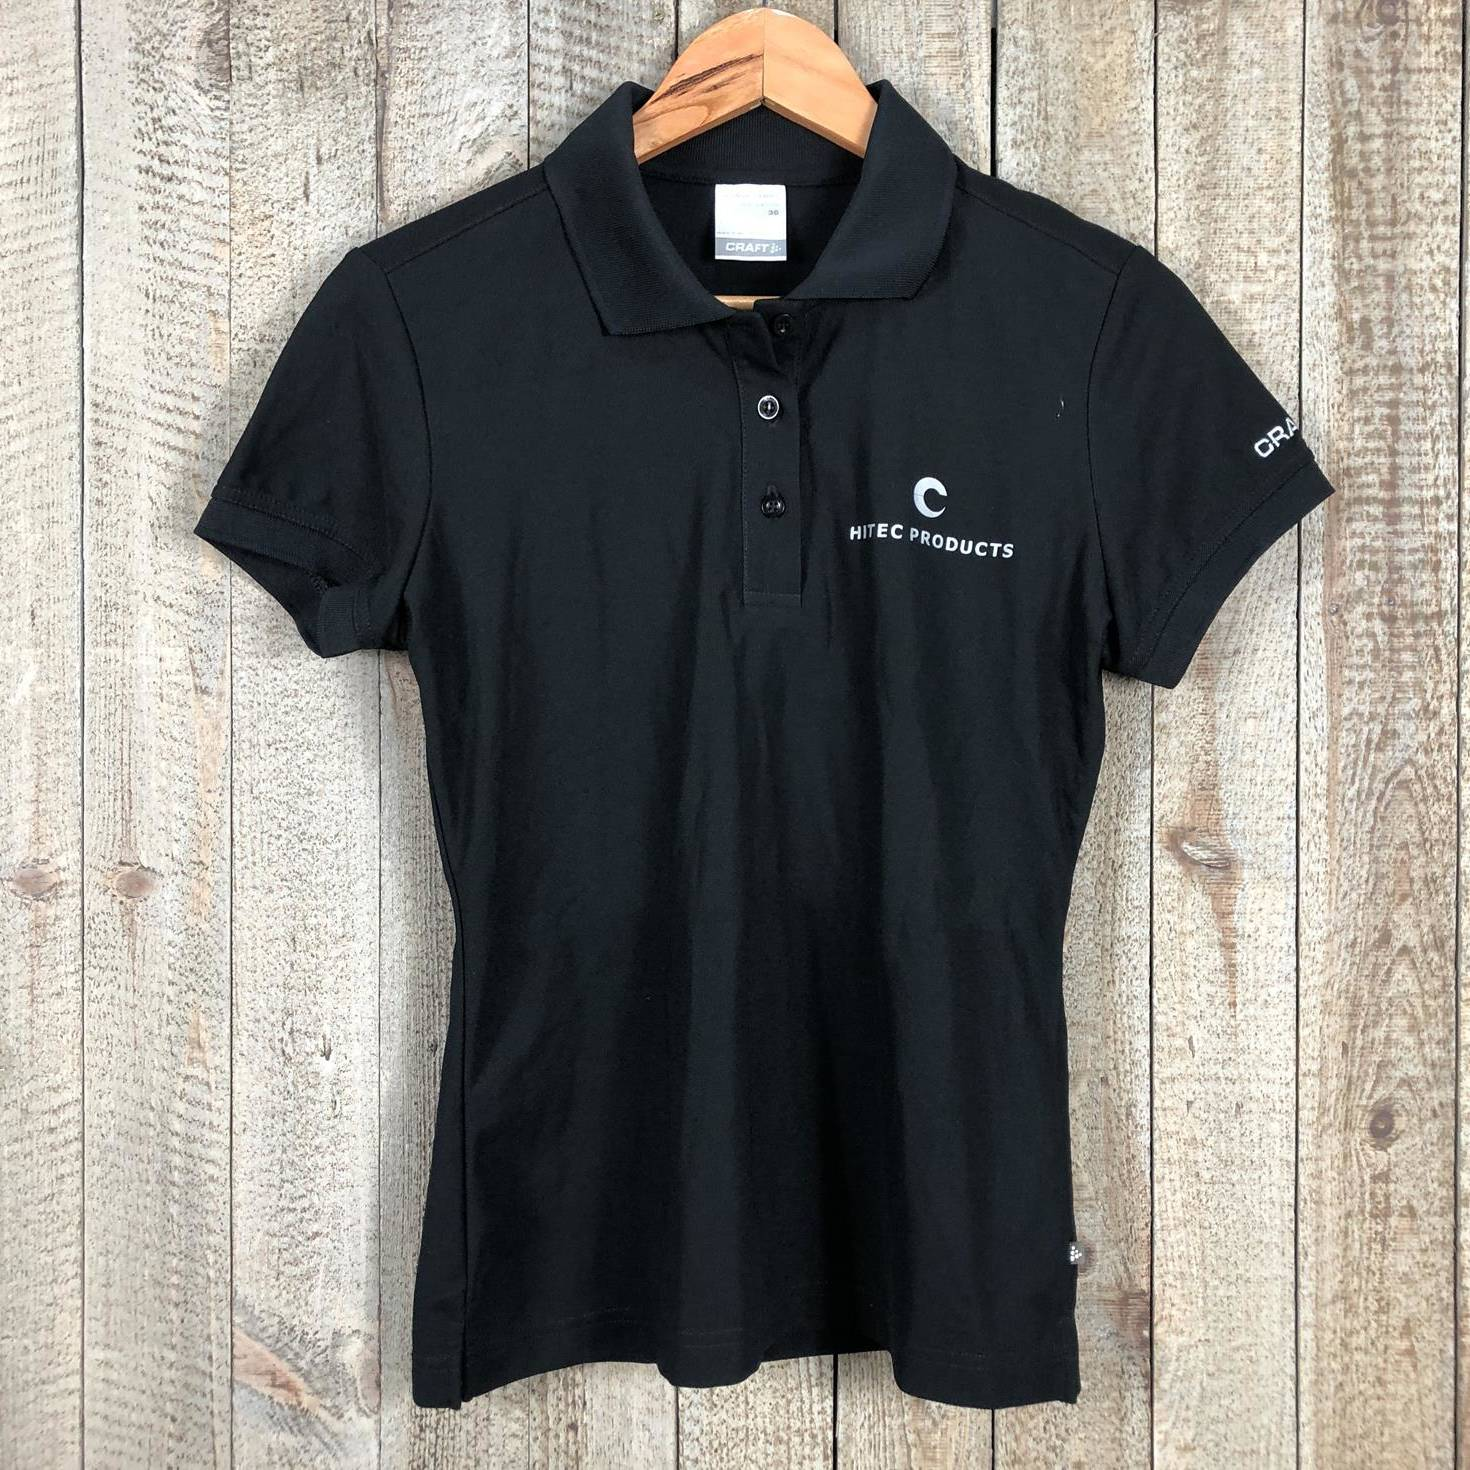 Polo Shirt - Hitec Products 00002994 (1)